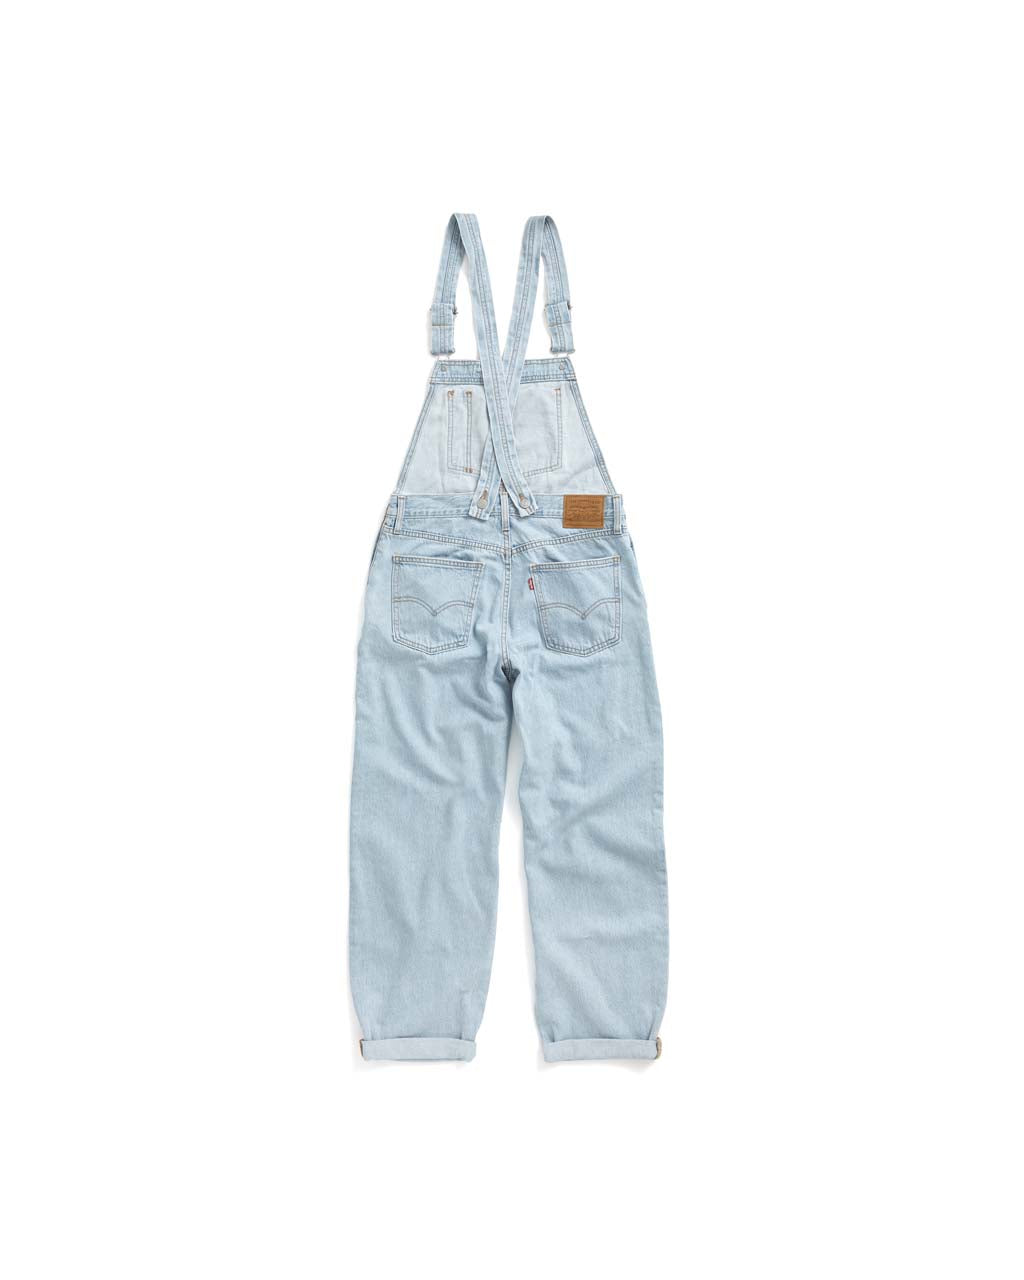 Baggy Overall - Light Wash